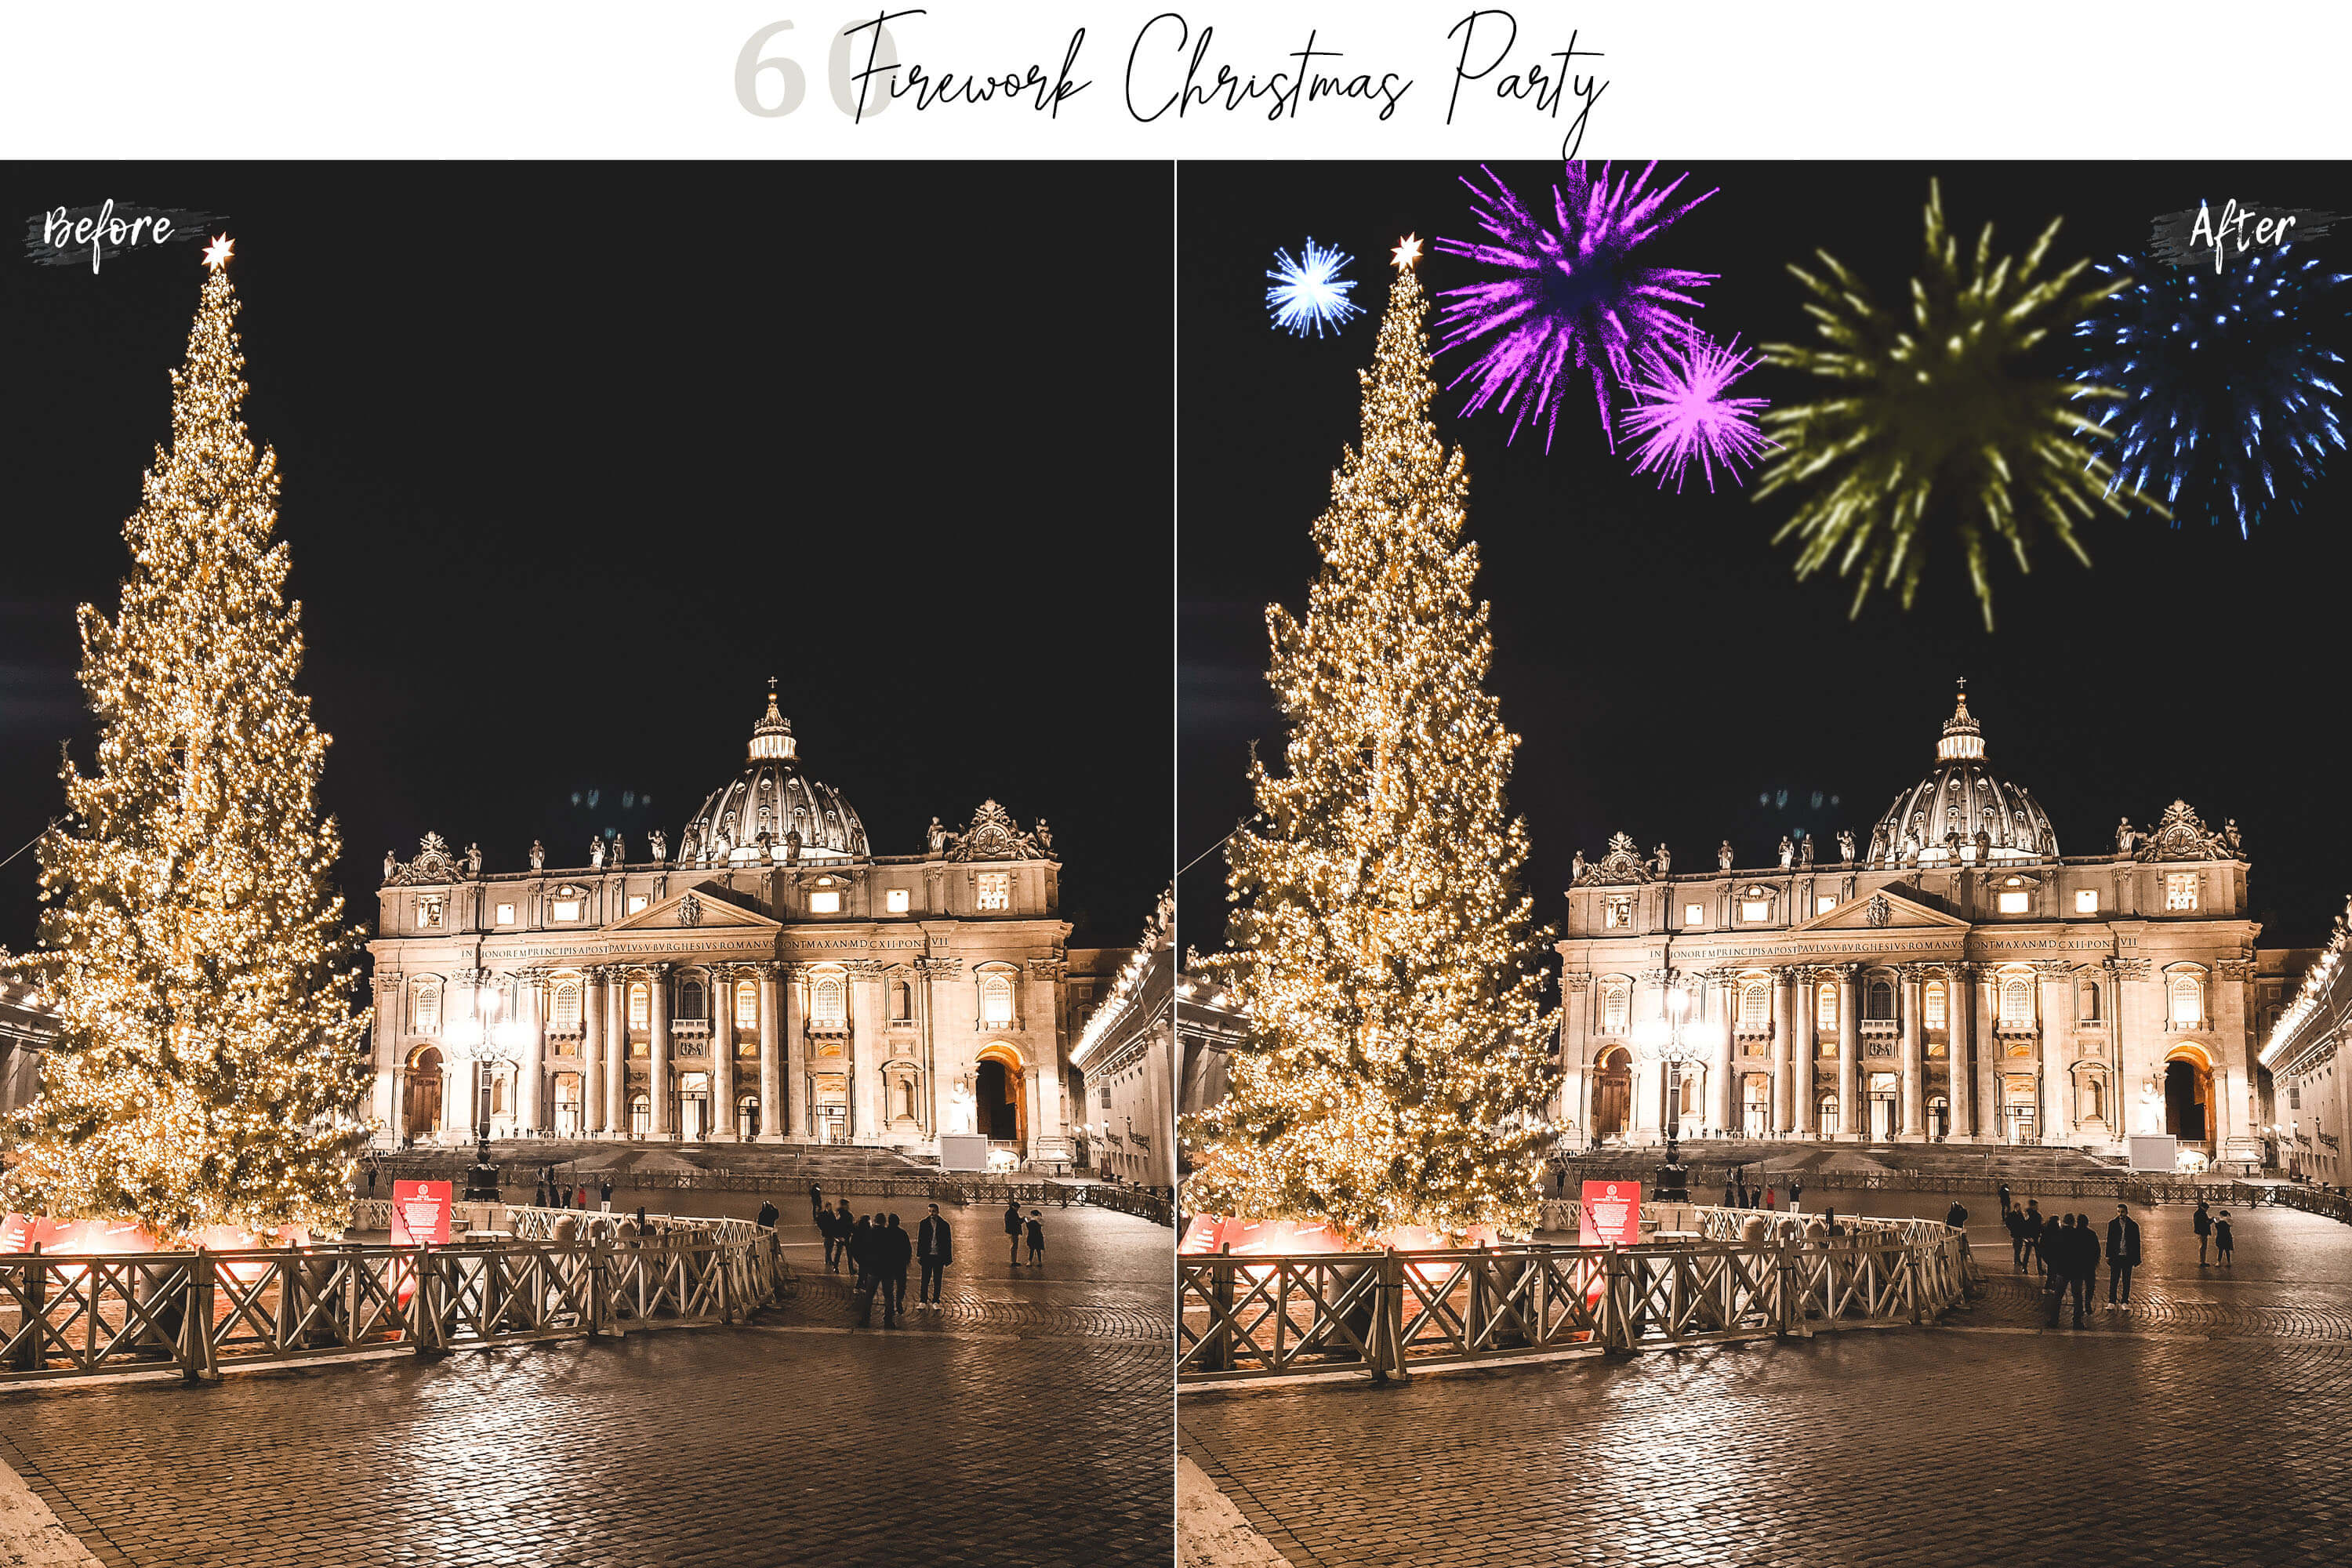 60 Firework Christmas Party Overlays example image 10